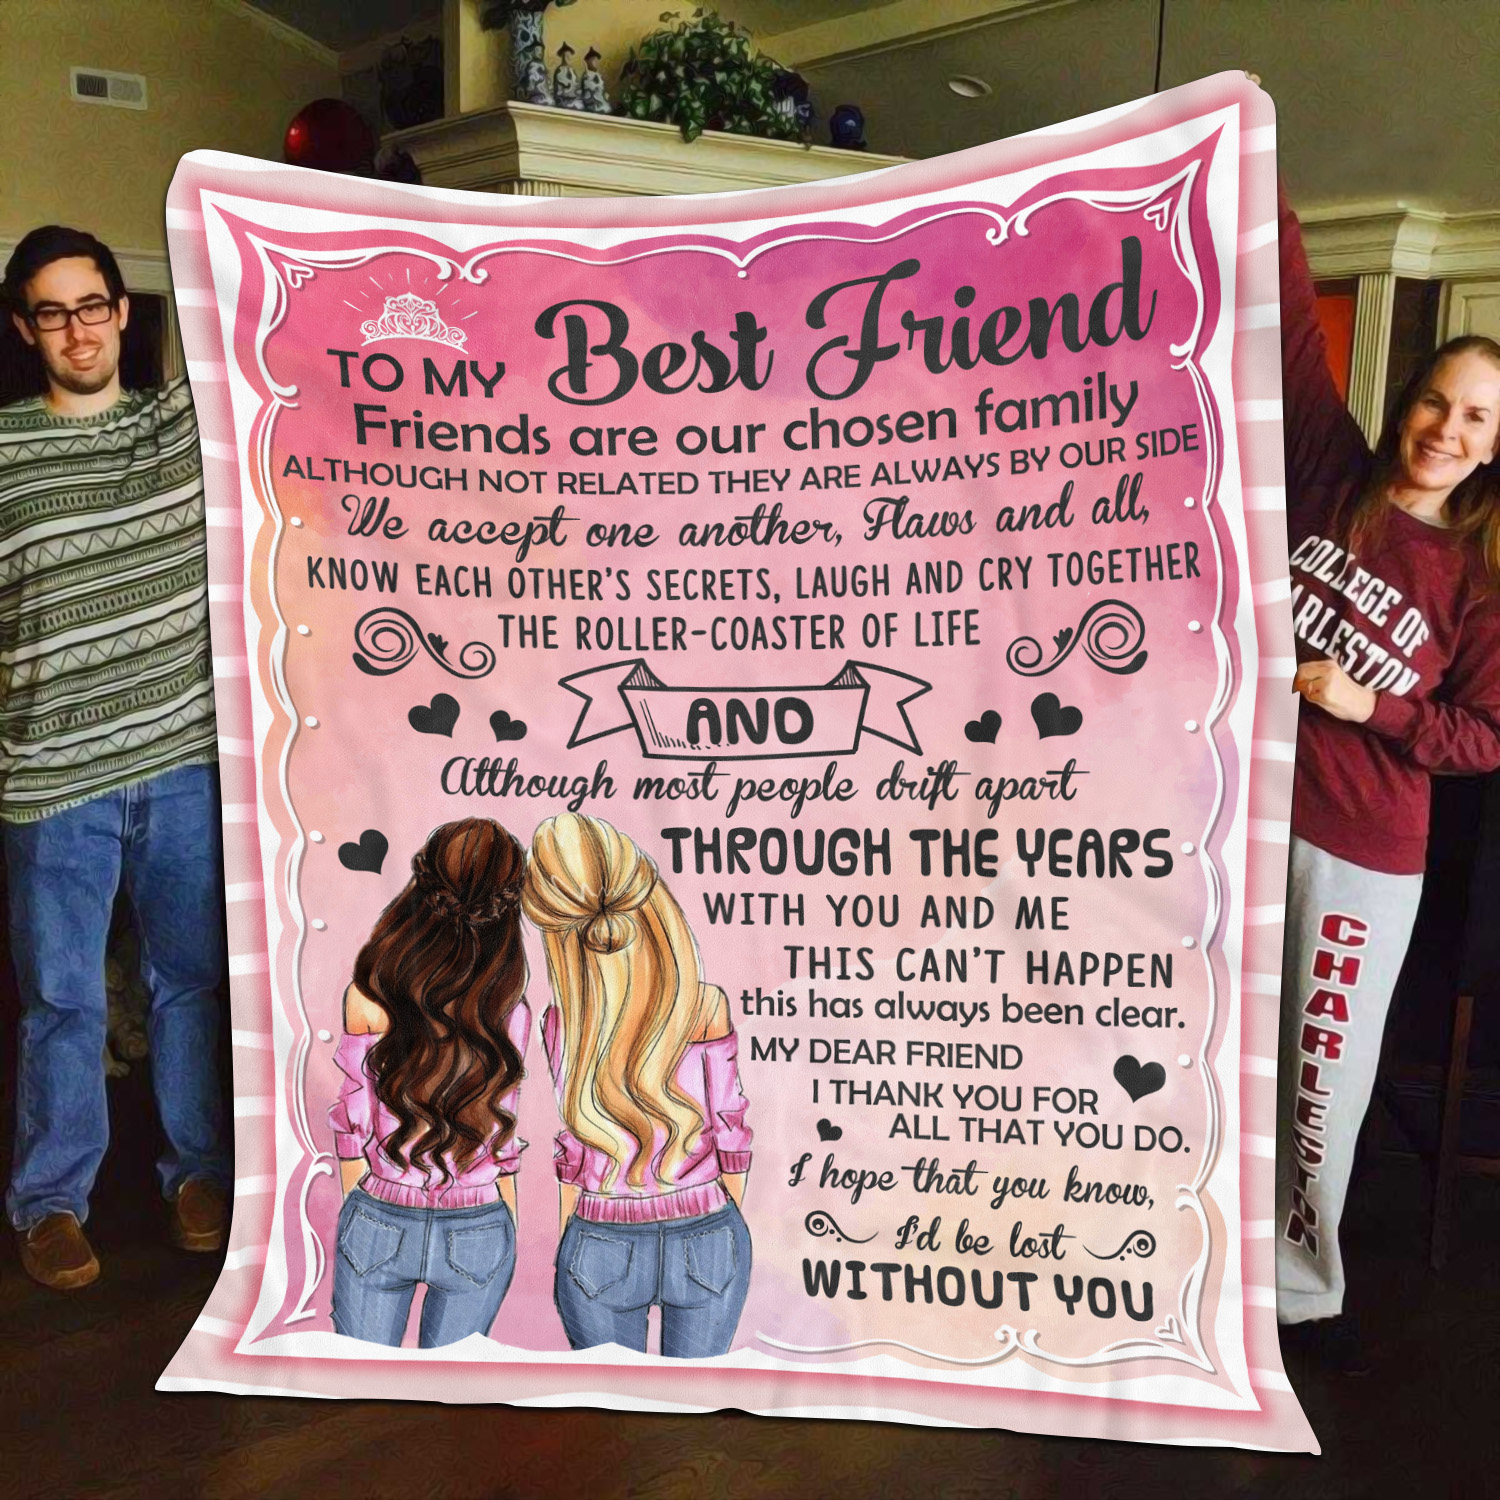 To My Best Friend My Dear Friend I Thank You for All That You Do Fleece Blanket